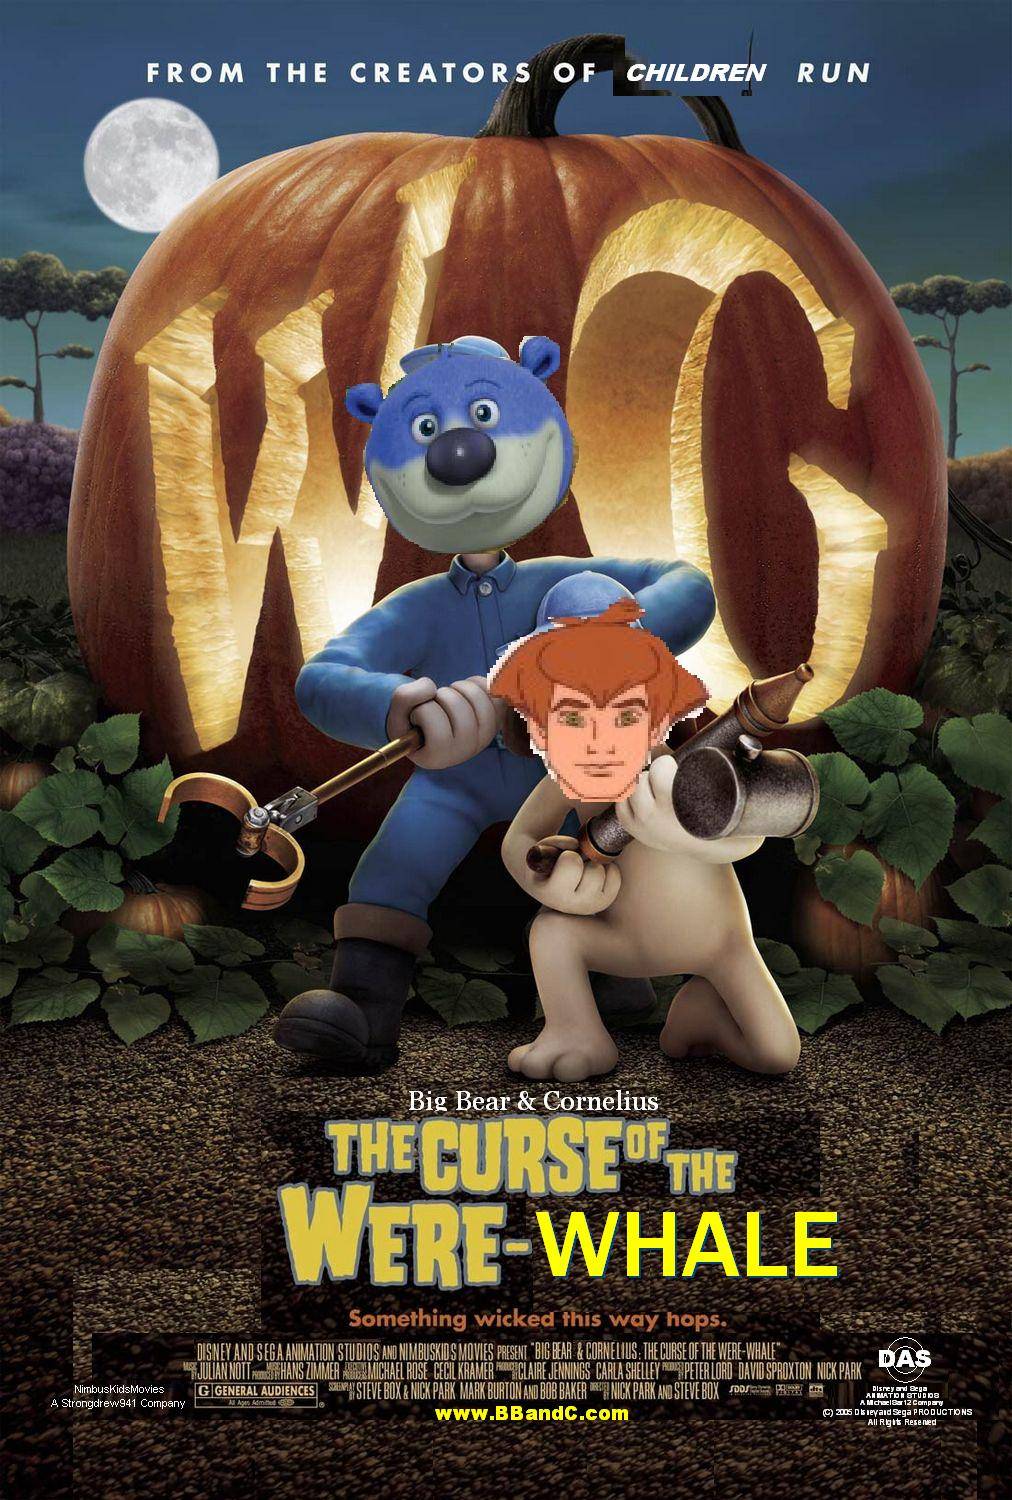 Big Bear and Cornelius: The Cruse of the Were-Whale